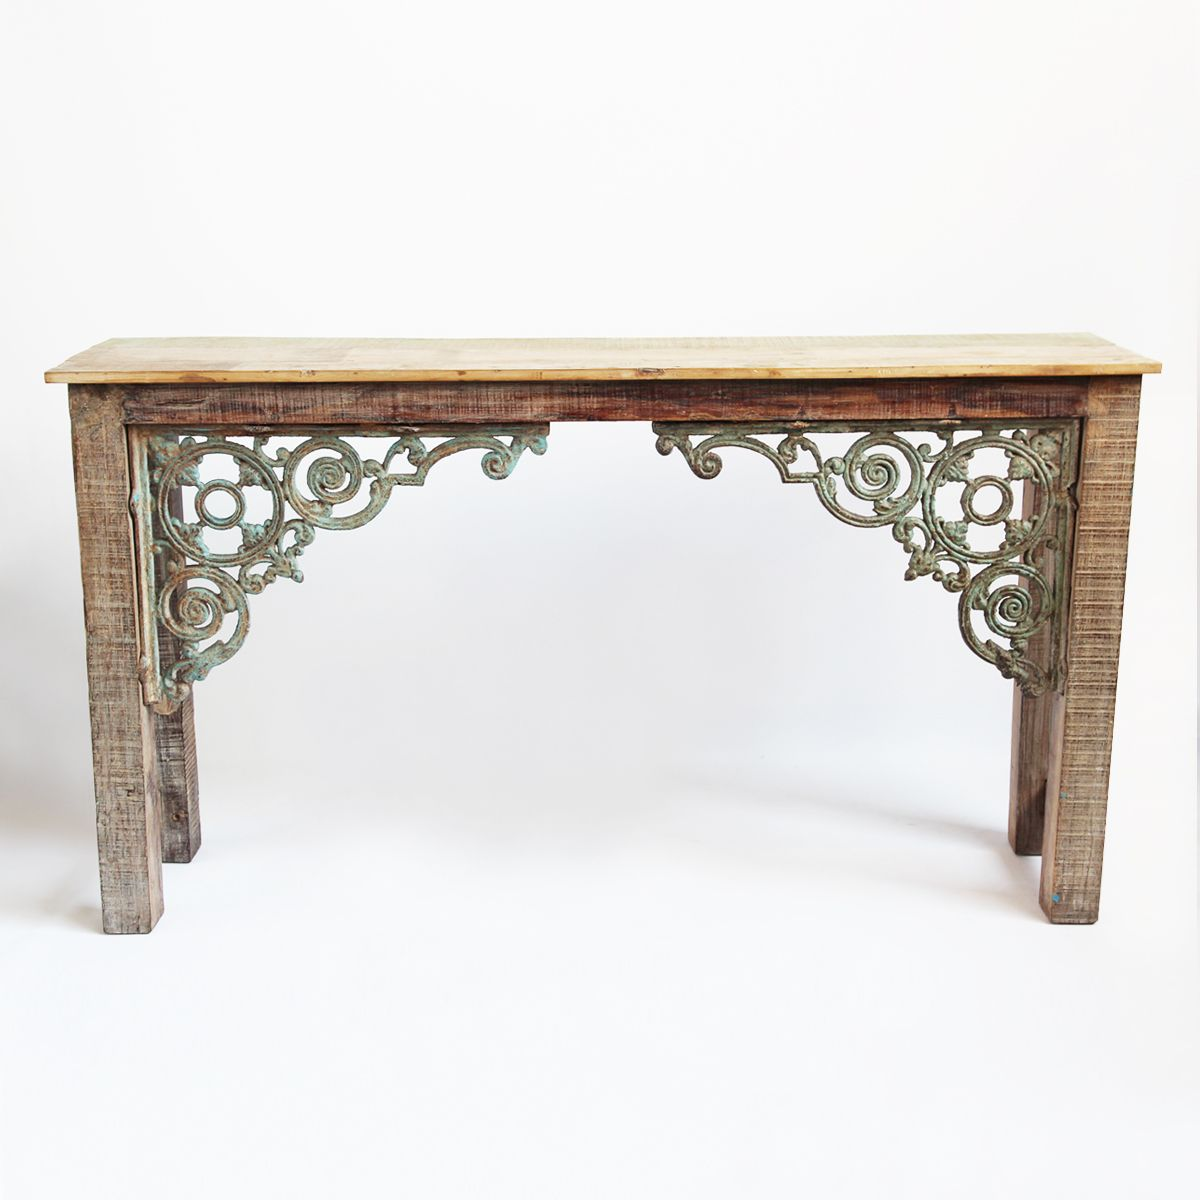 Reclaimed wood and iron console table white wash reclaimed wood reclaimed wood and iron console table white wash reclaimed wood with cast iron corner brackets geotapseo Gallery